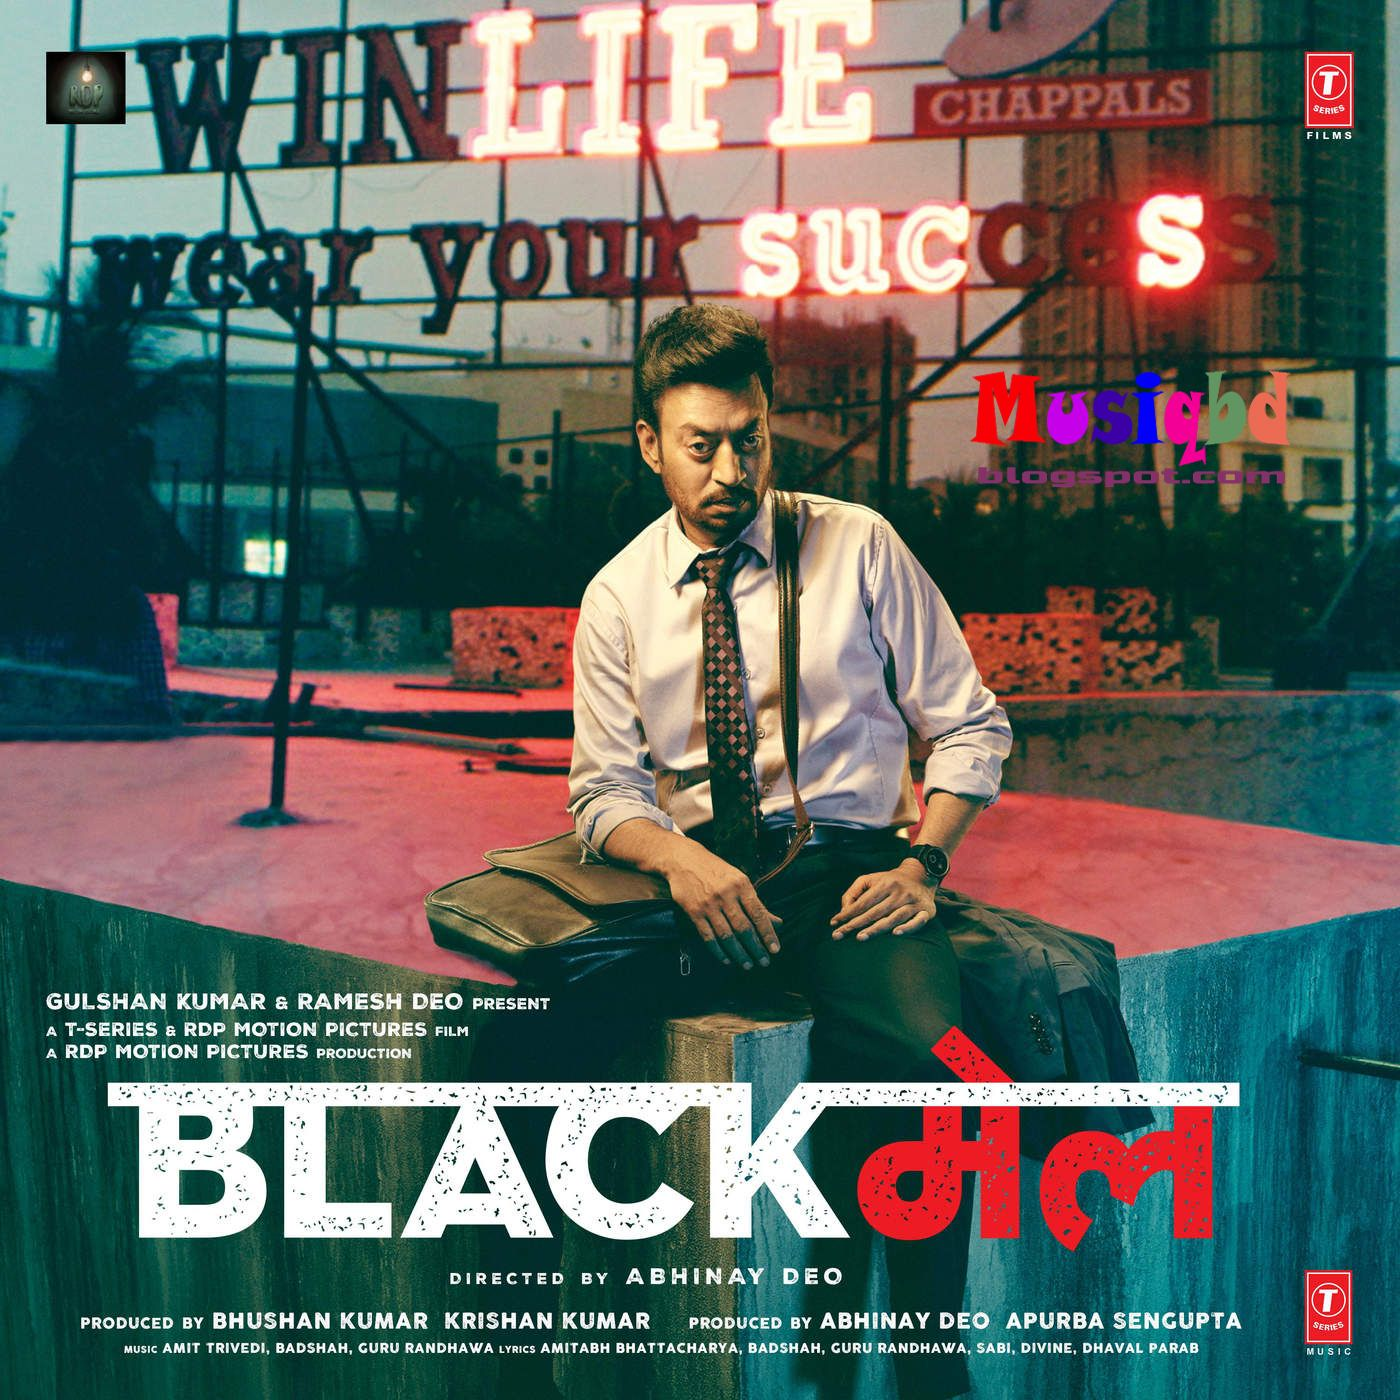 New Hindi Movei 2018 2019 Bolliwood: Blackmail (2018) Bollywood Movie Mp3 Songs Download In